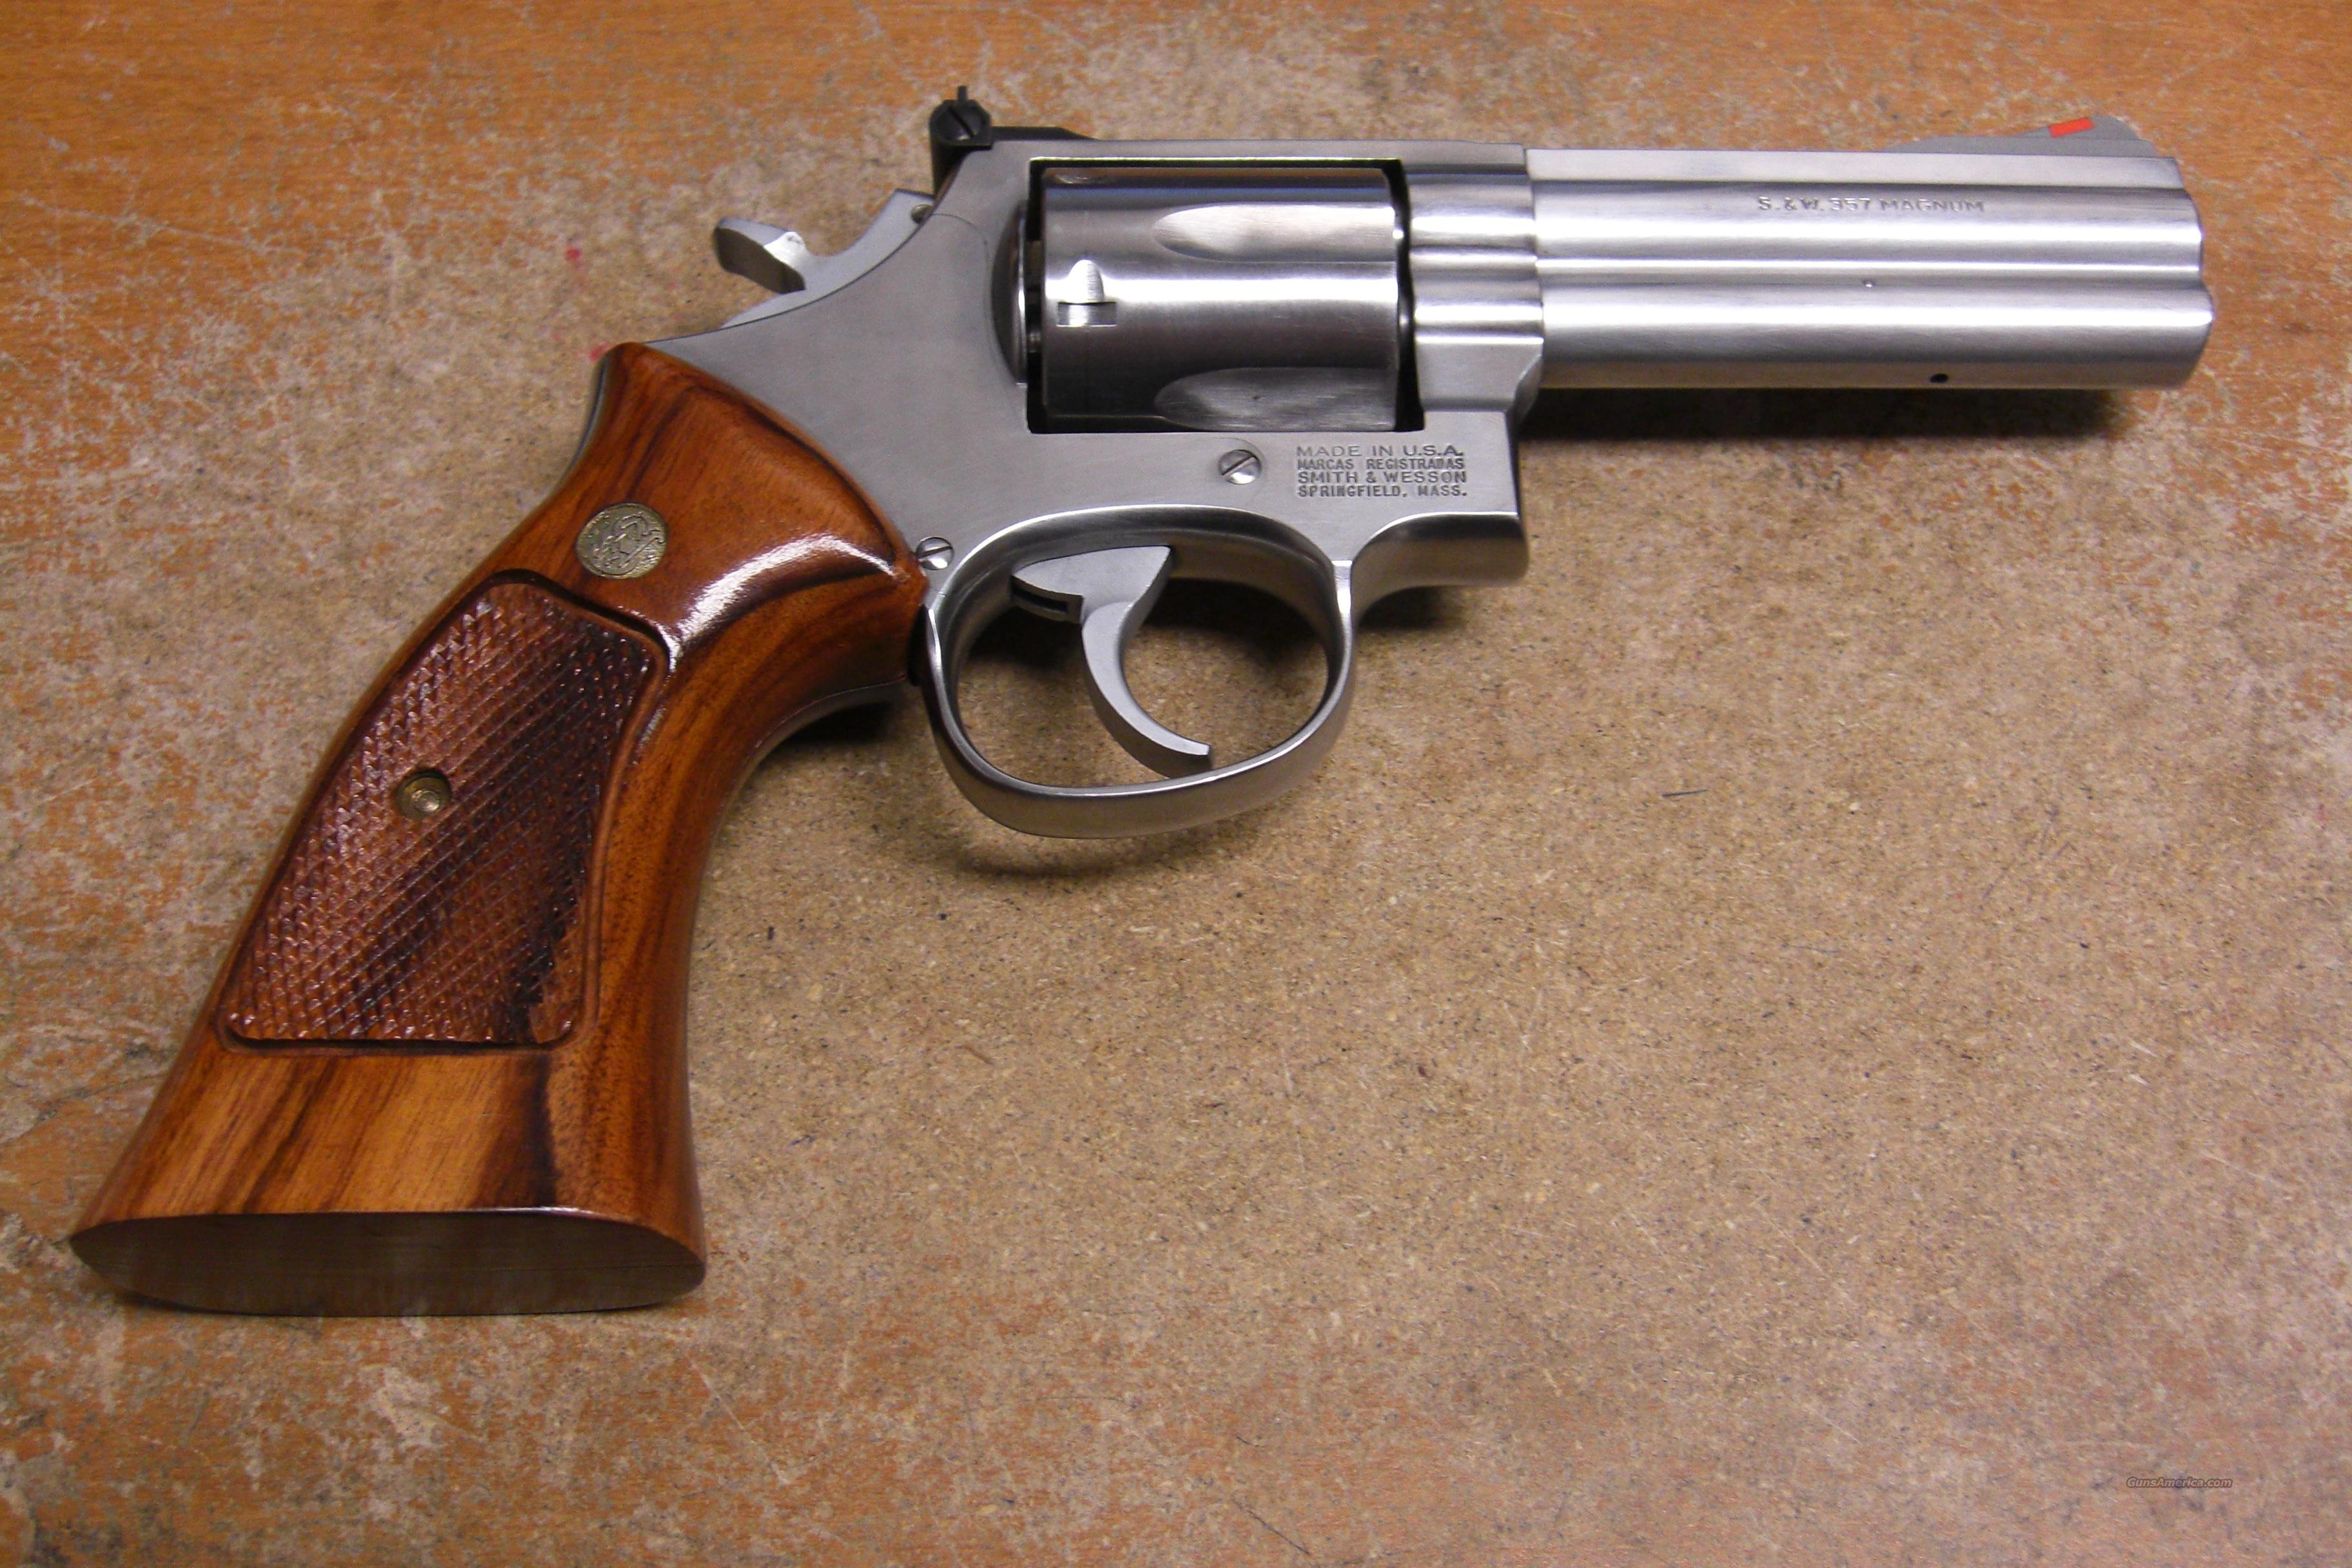 686-3  stainless  Guns > Pistols > Smith & Wesson Revolvers > Full Frame Revolver